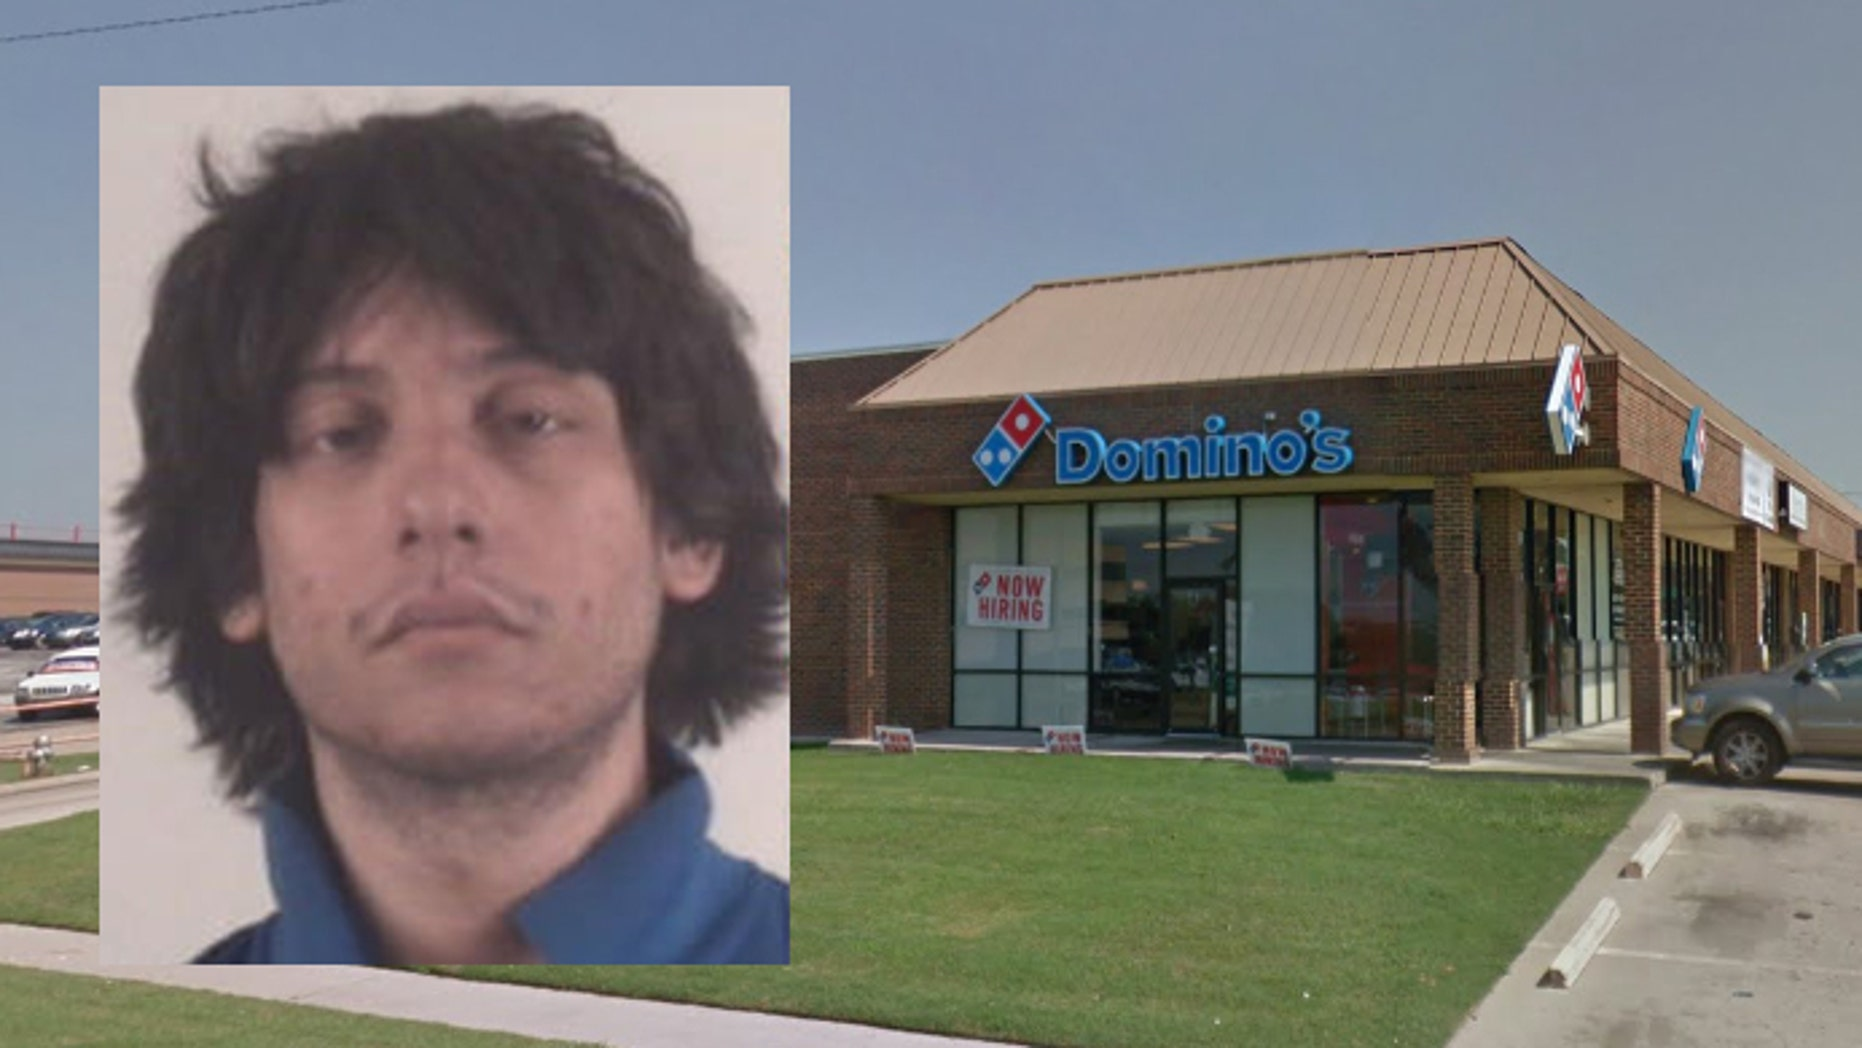 Andrew Peppers, 22, has been charged with aggravated robbery and is currently being held in a Fort Worth jail.